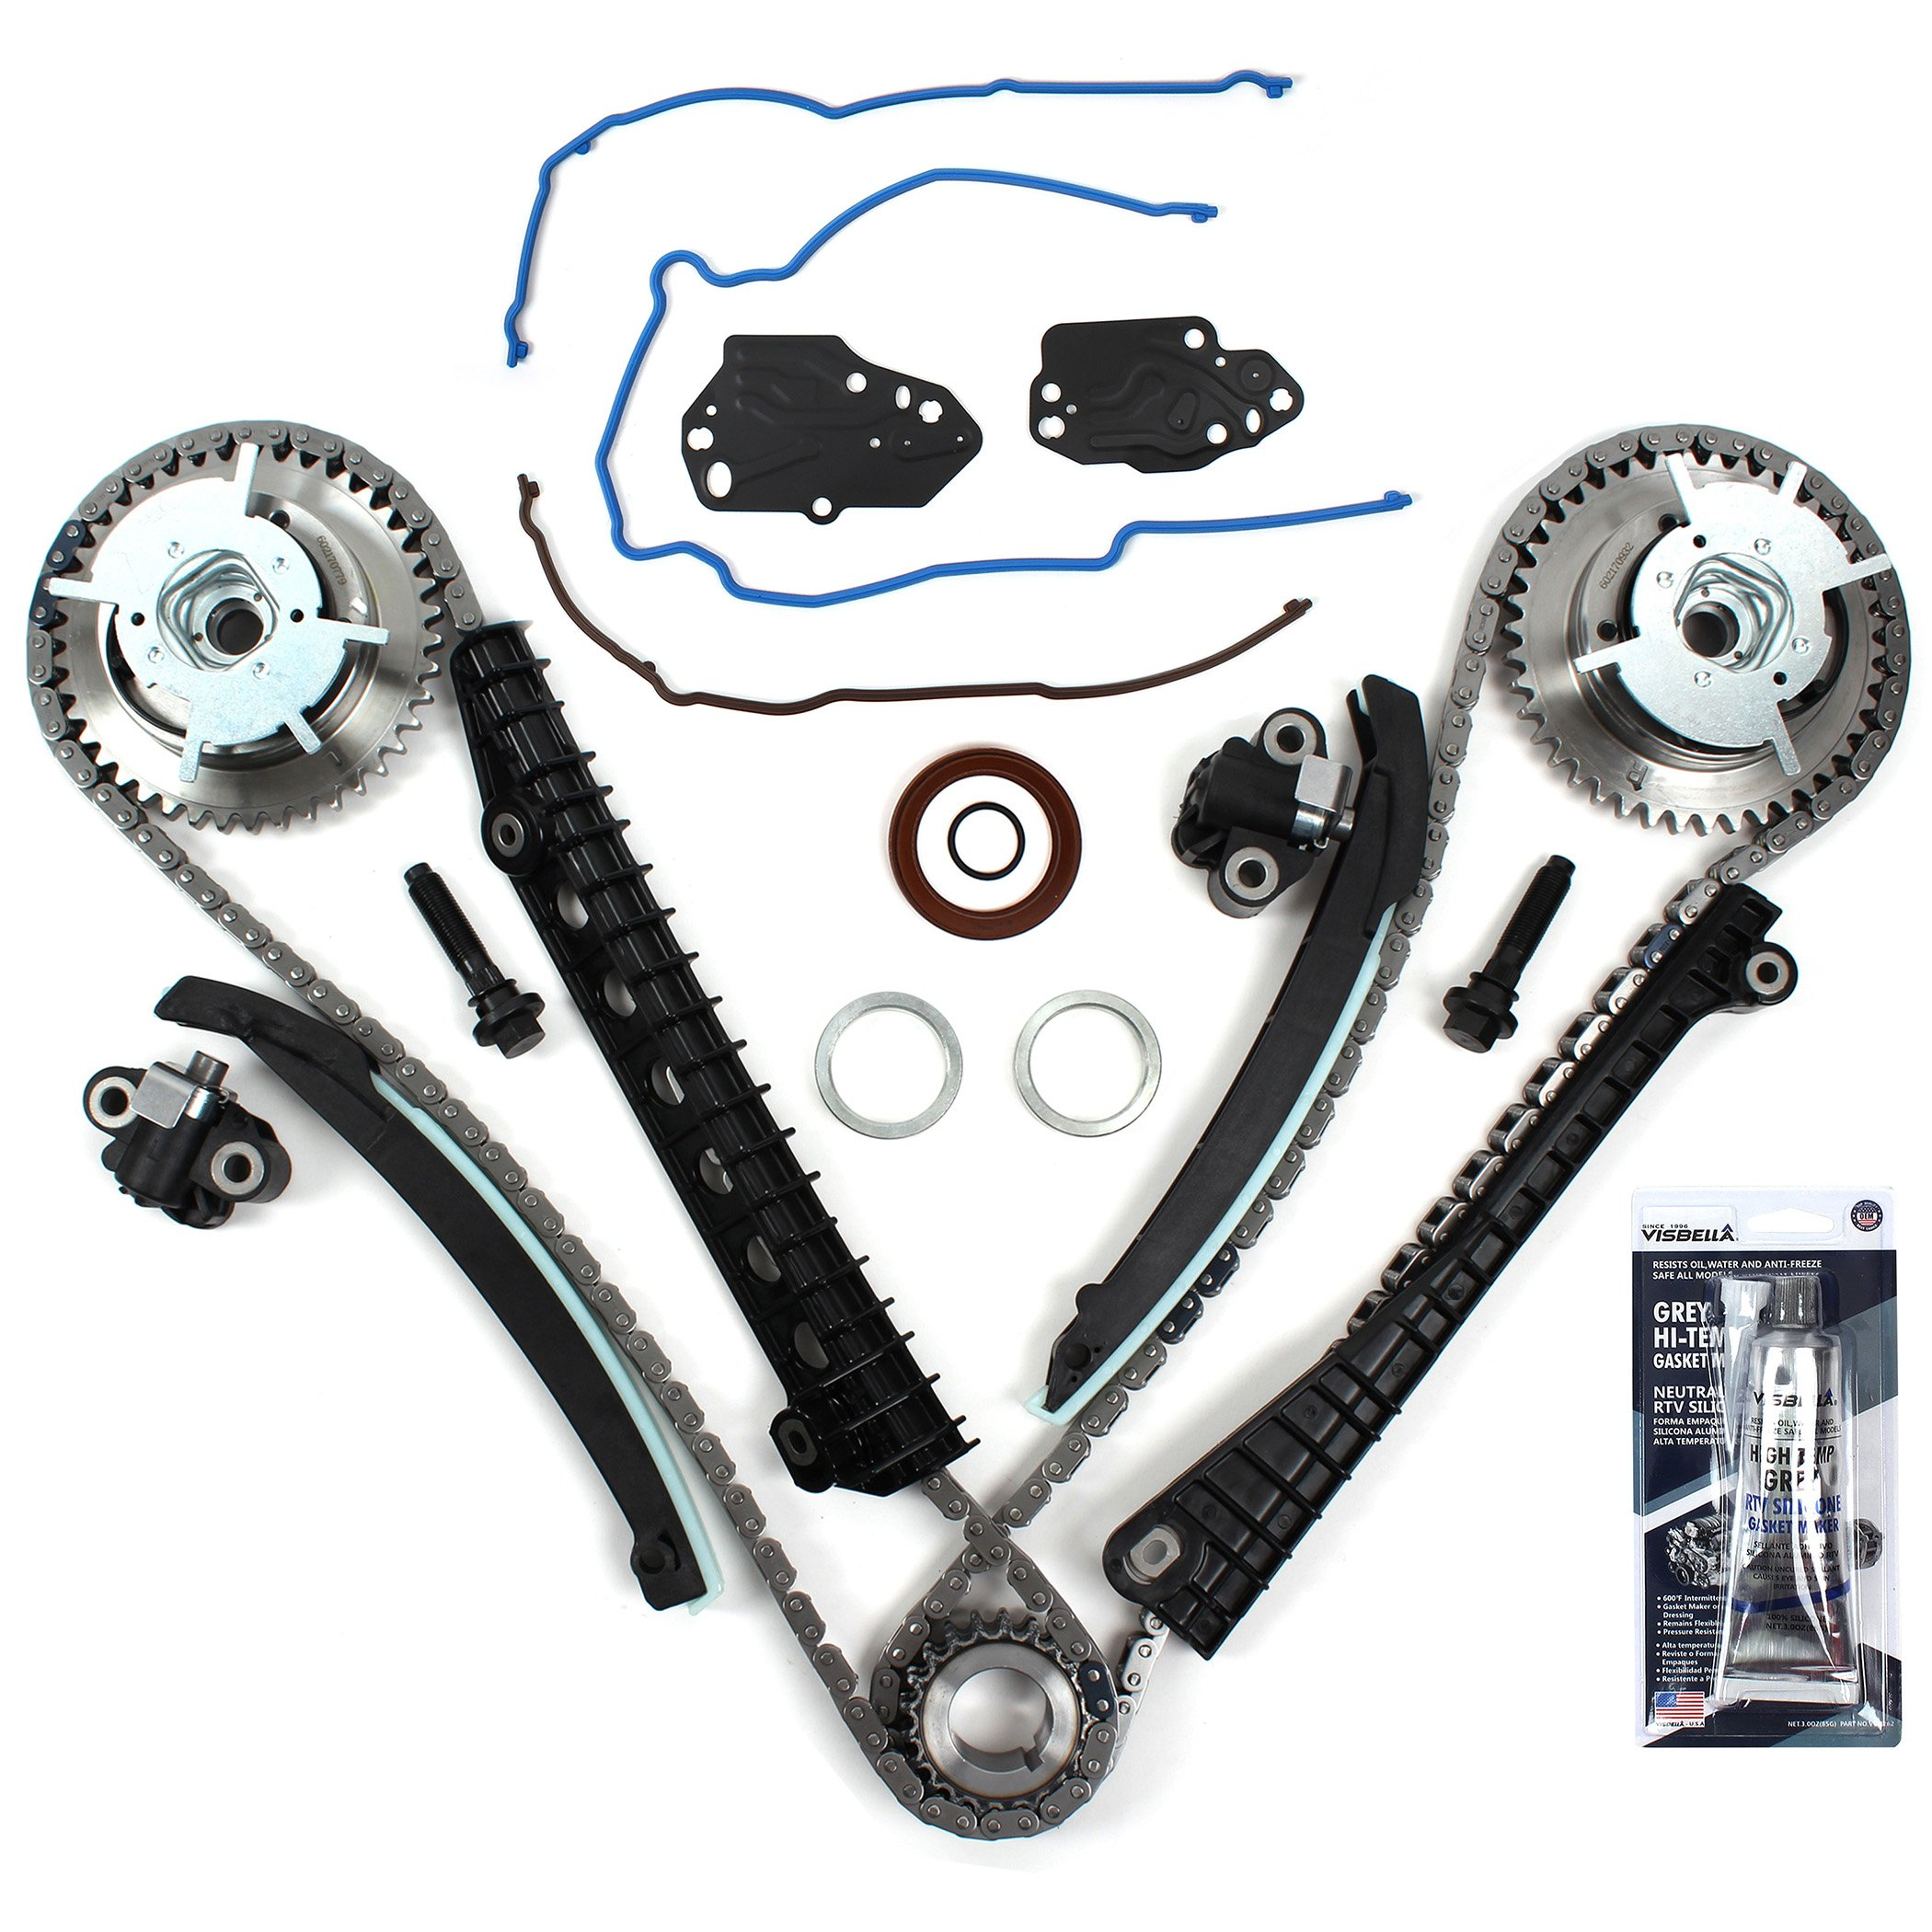 New ETCK460GSI Timing Chain Kit, Timing Cover Seals, Cam Phasers w/Mounting Bolts, RTV Gasket Maker for 2004-08 Ford 5.4L (3-Valve) Engine Expedition F-150 F-250 Super F-350 Super / Lincoln by CNS EngineParts